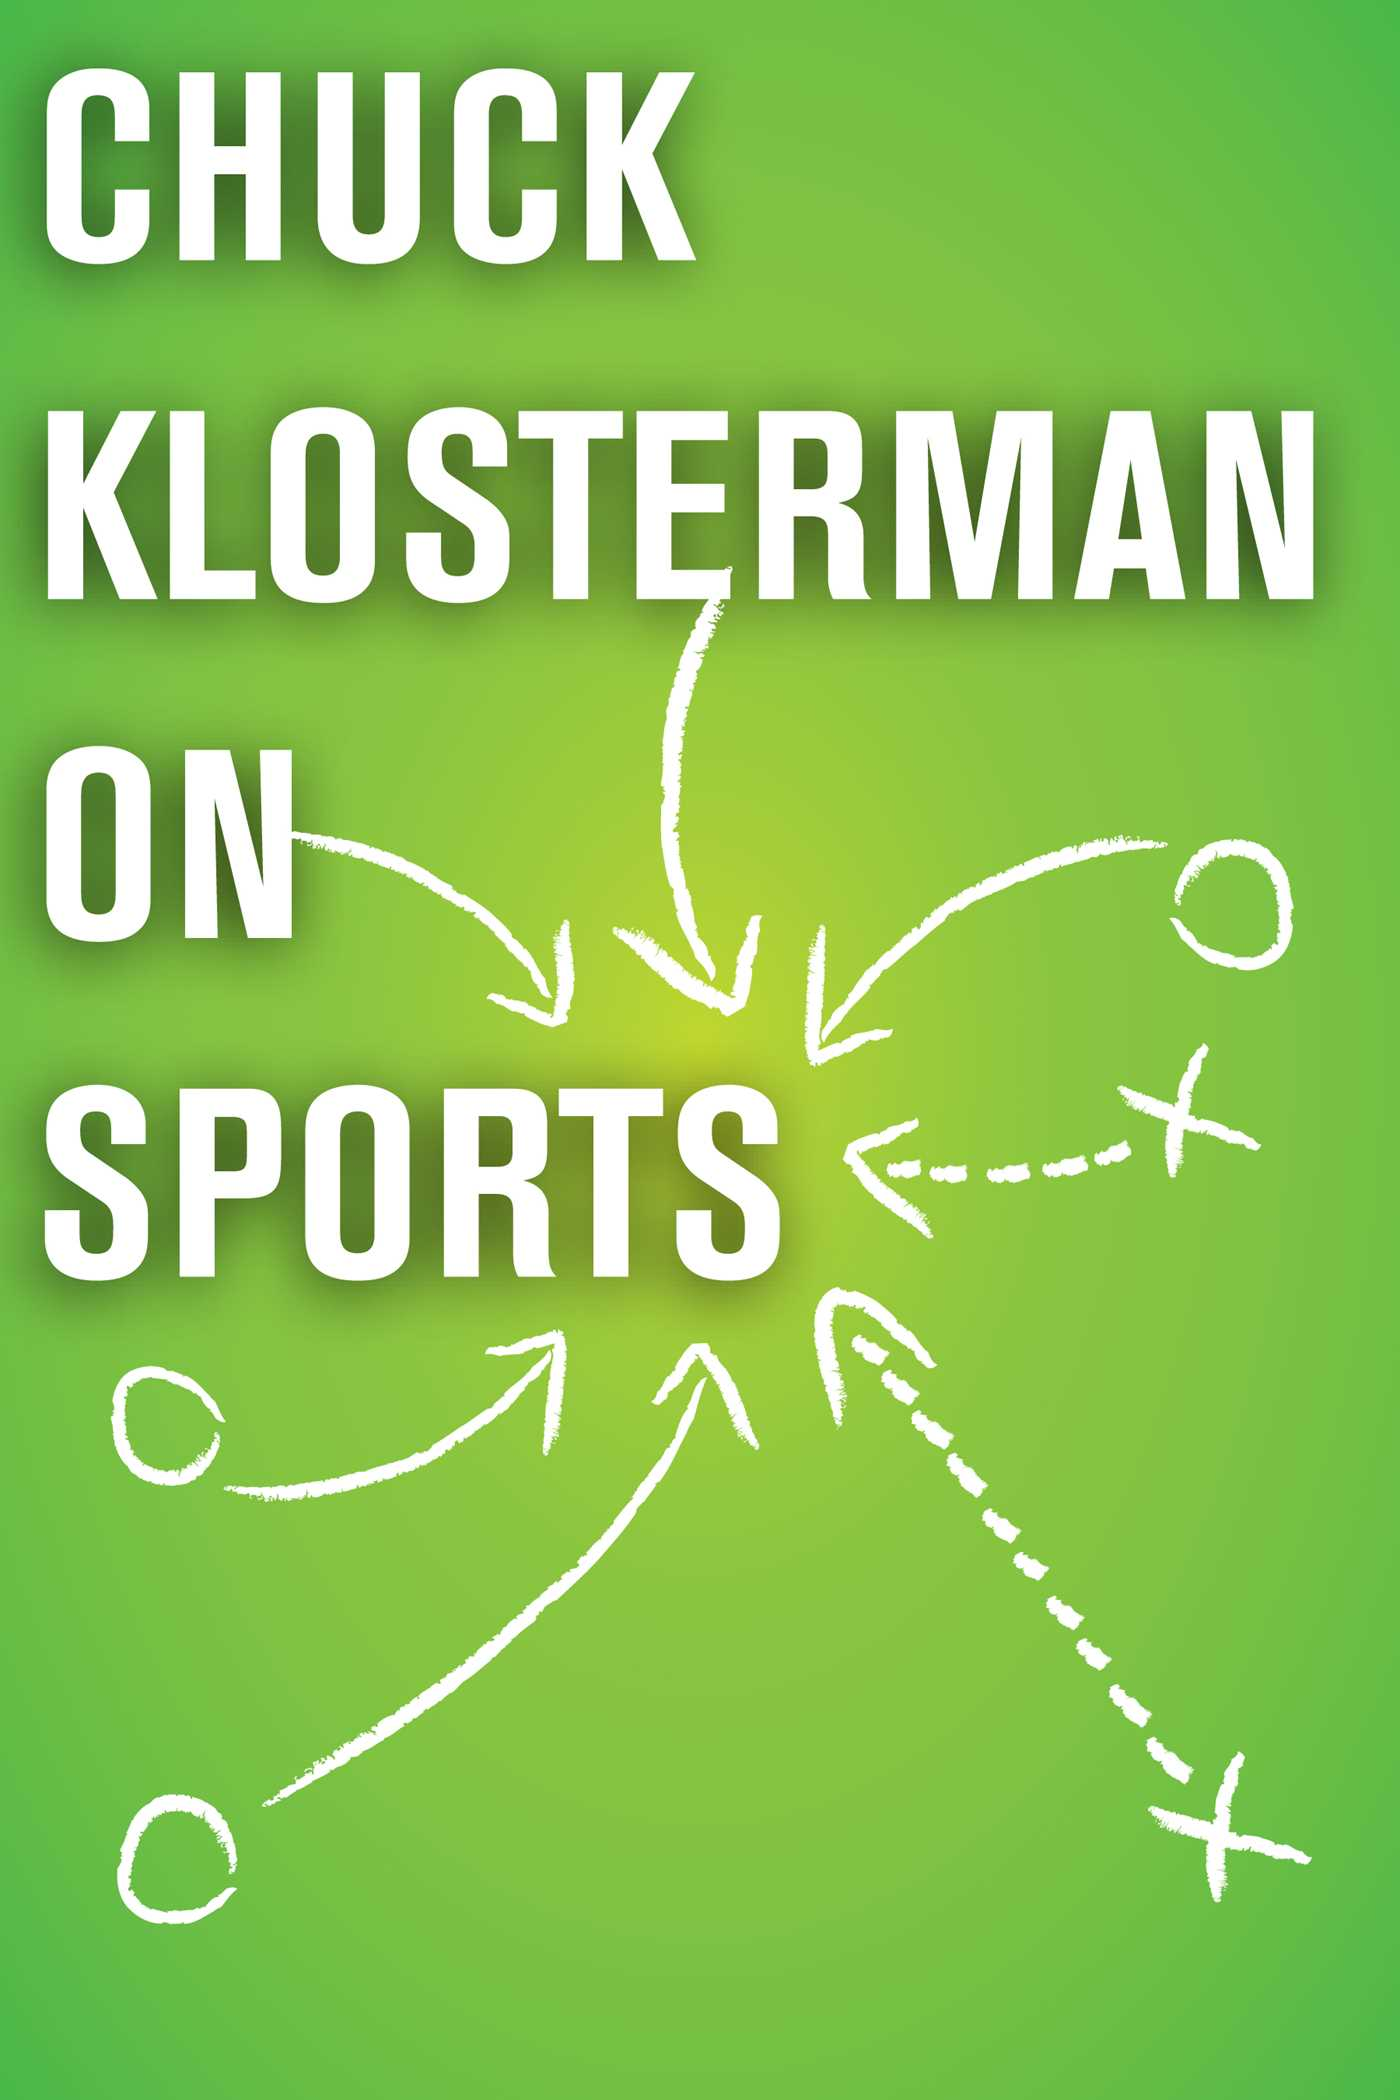 Chuck klosterman on sports 9781451621051 hr